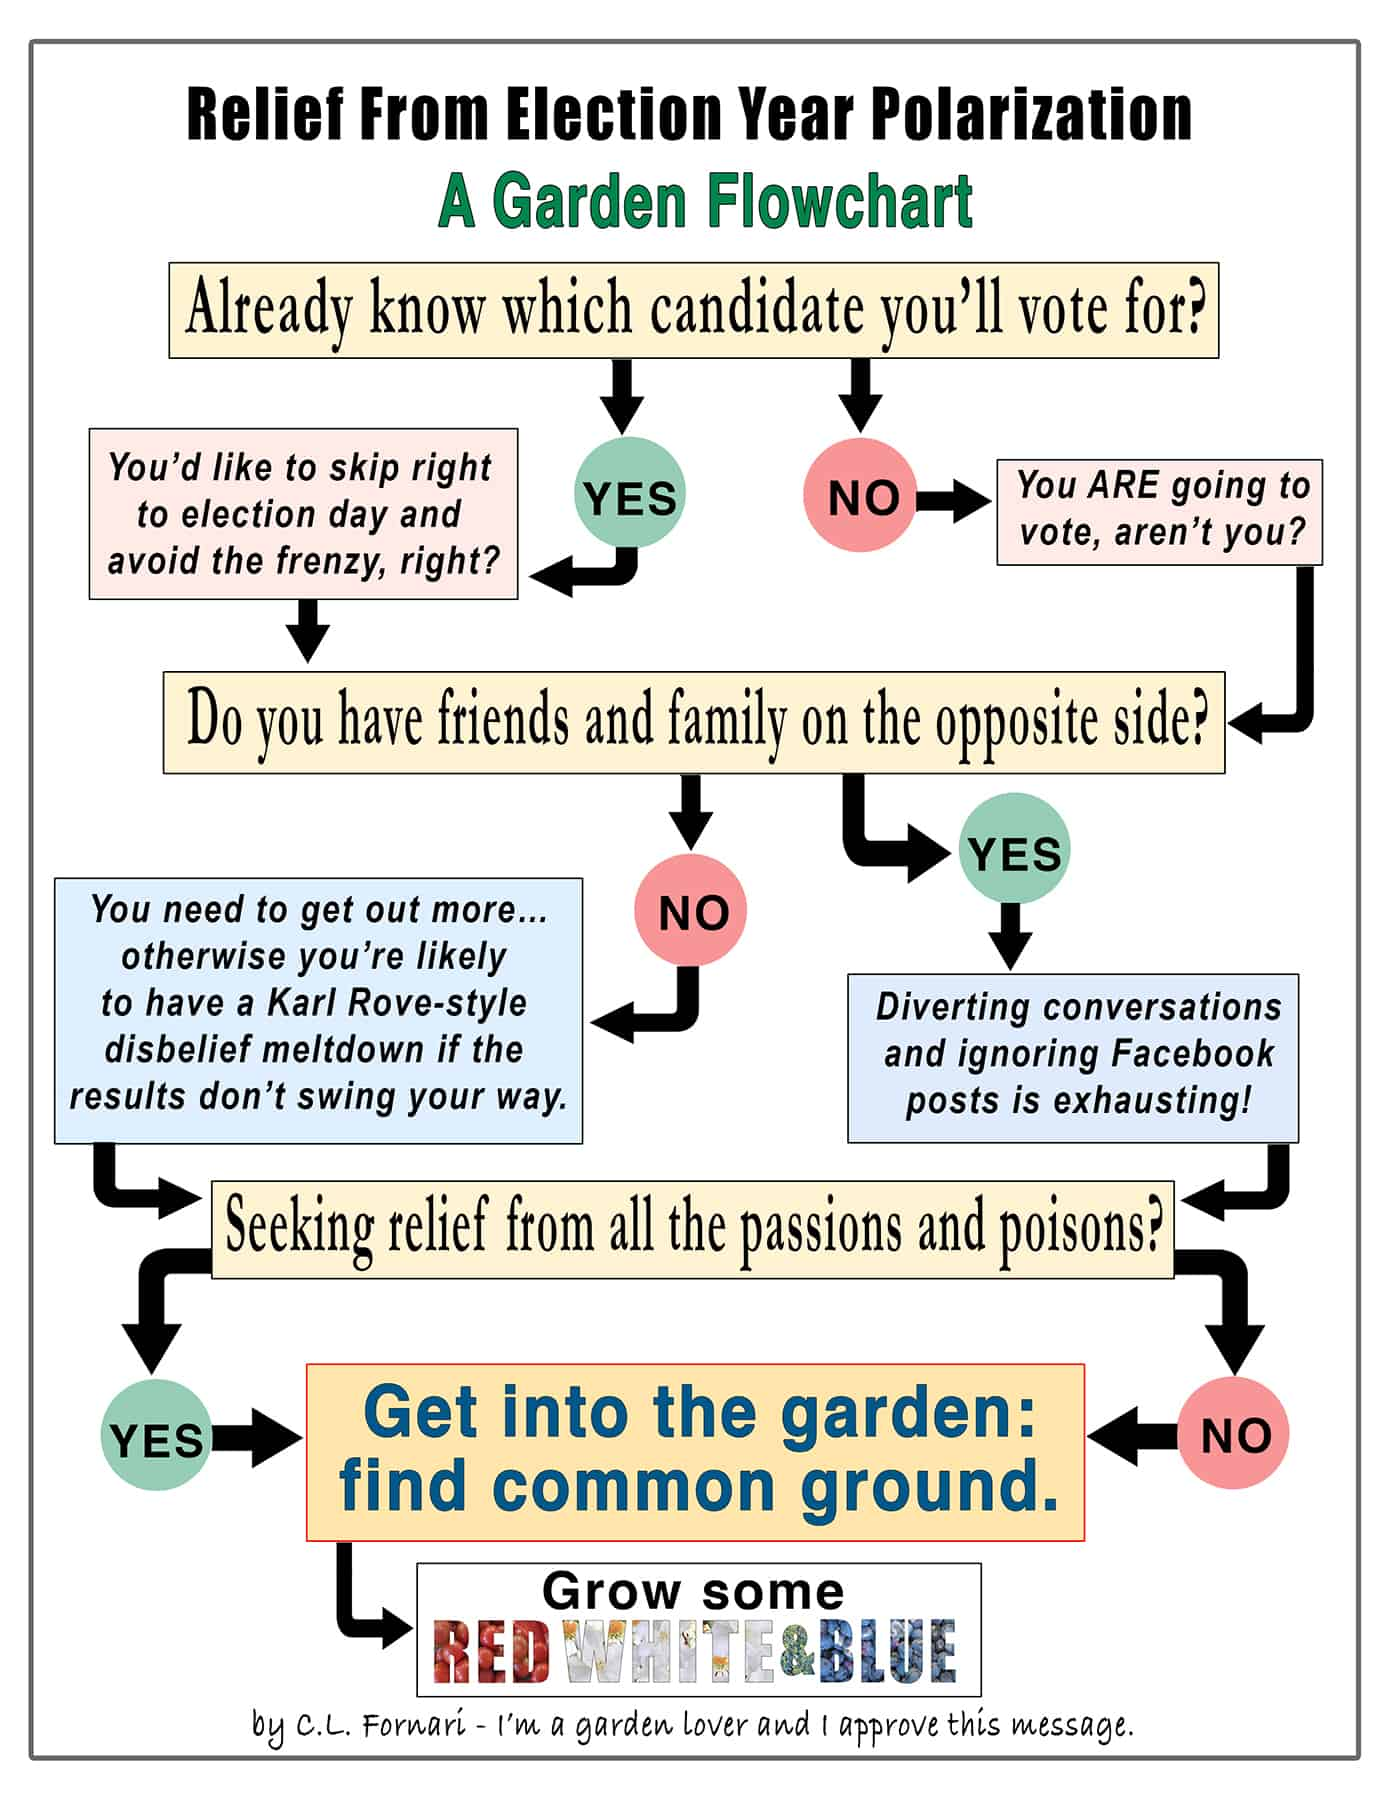 An Election Year Garden Flowchart